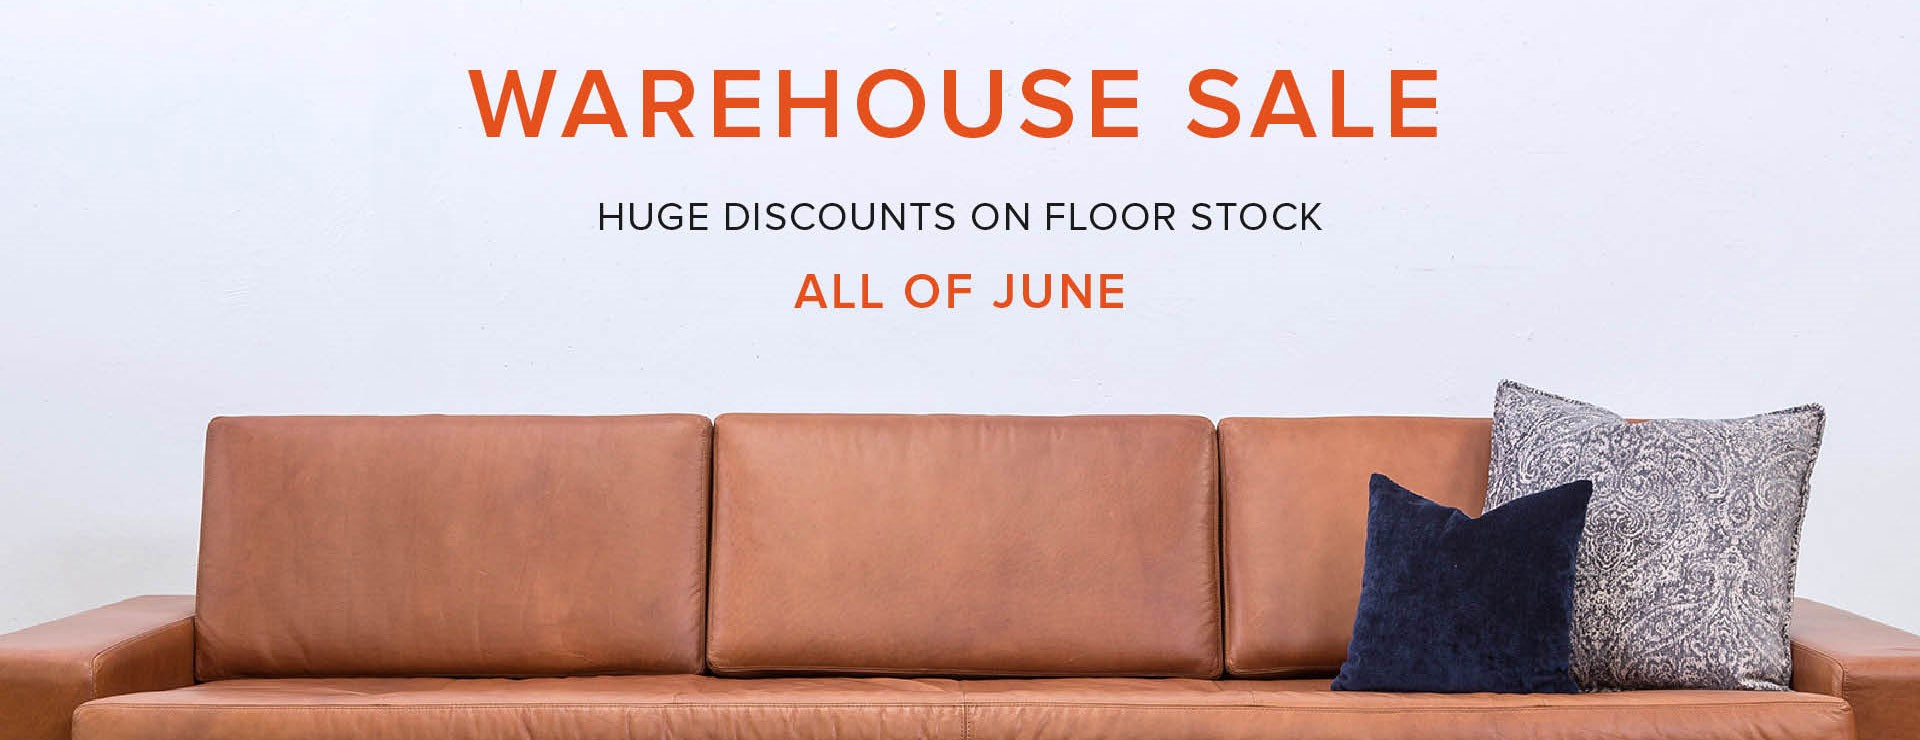 Floorstock, Your Time Has Come - June Sale Time!